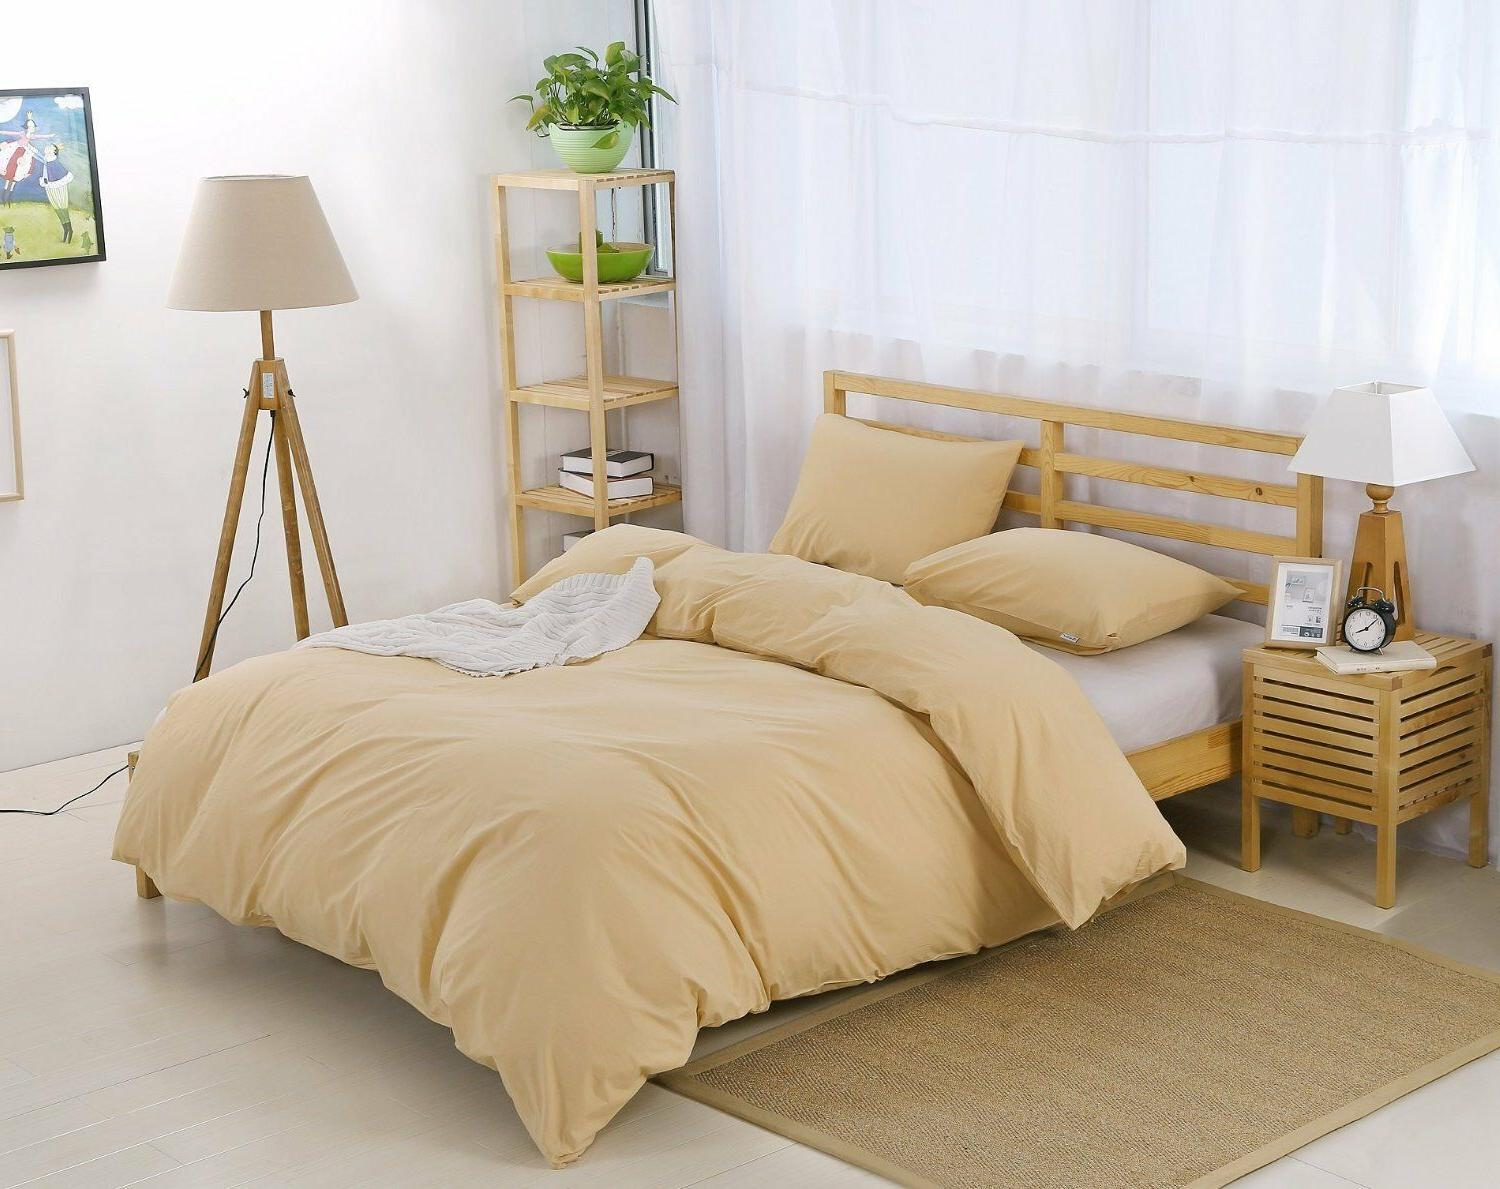 100 percent natural washed cotton duvet cover